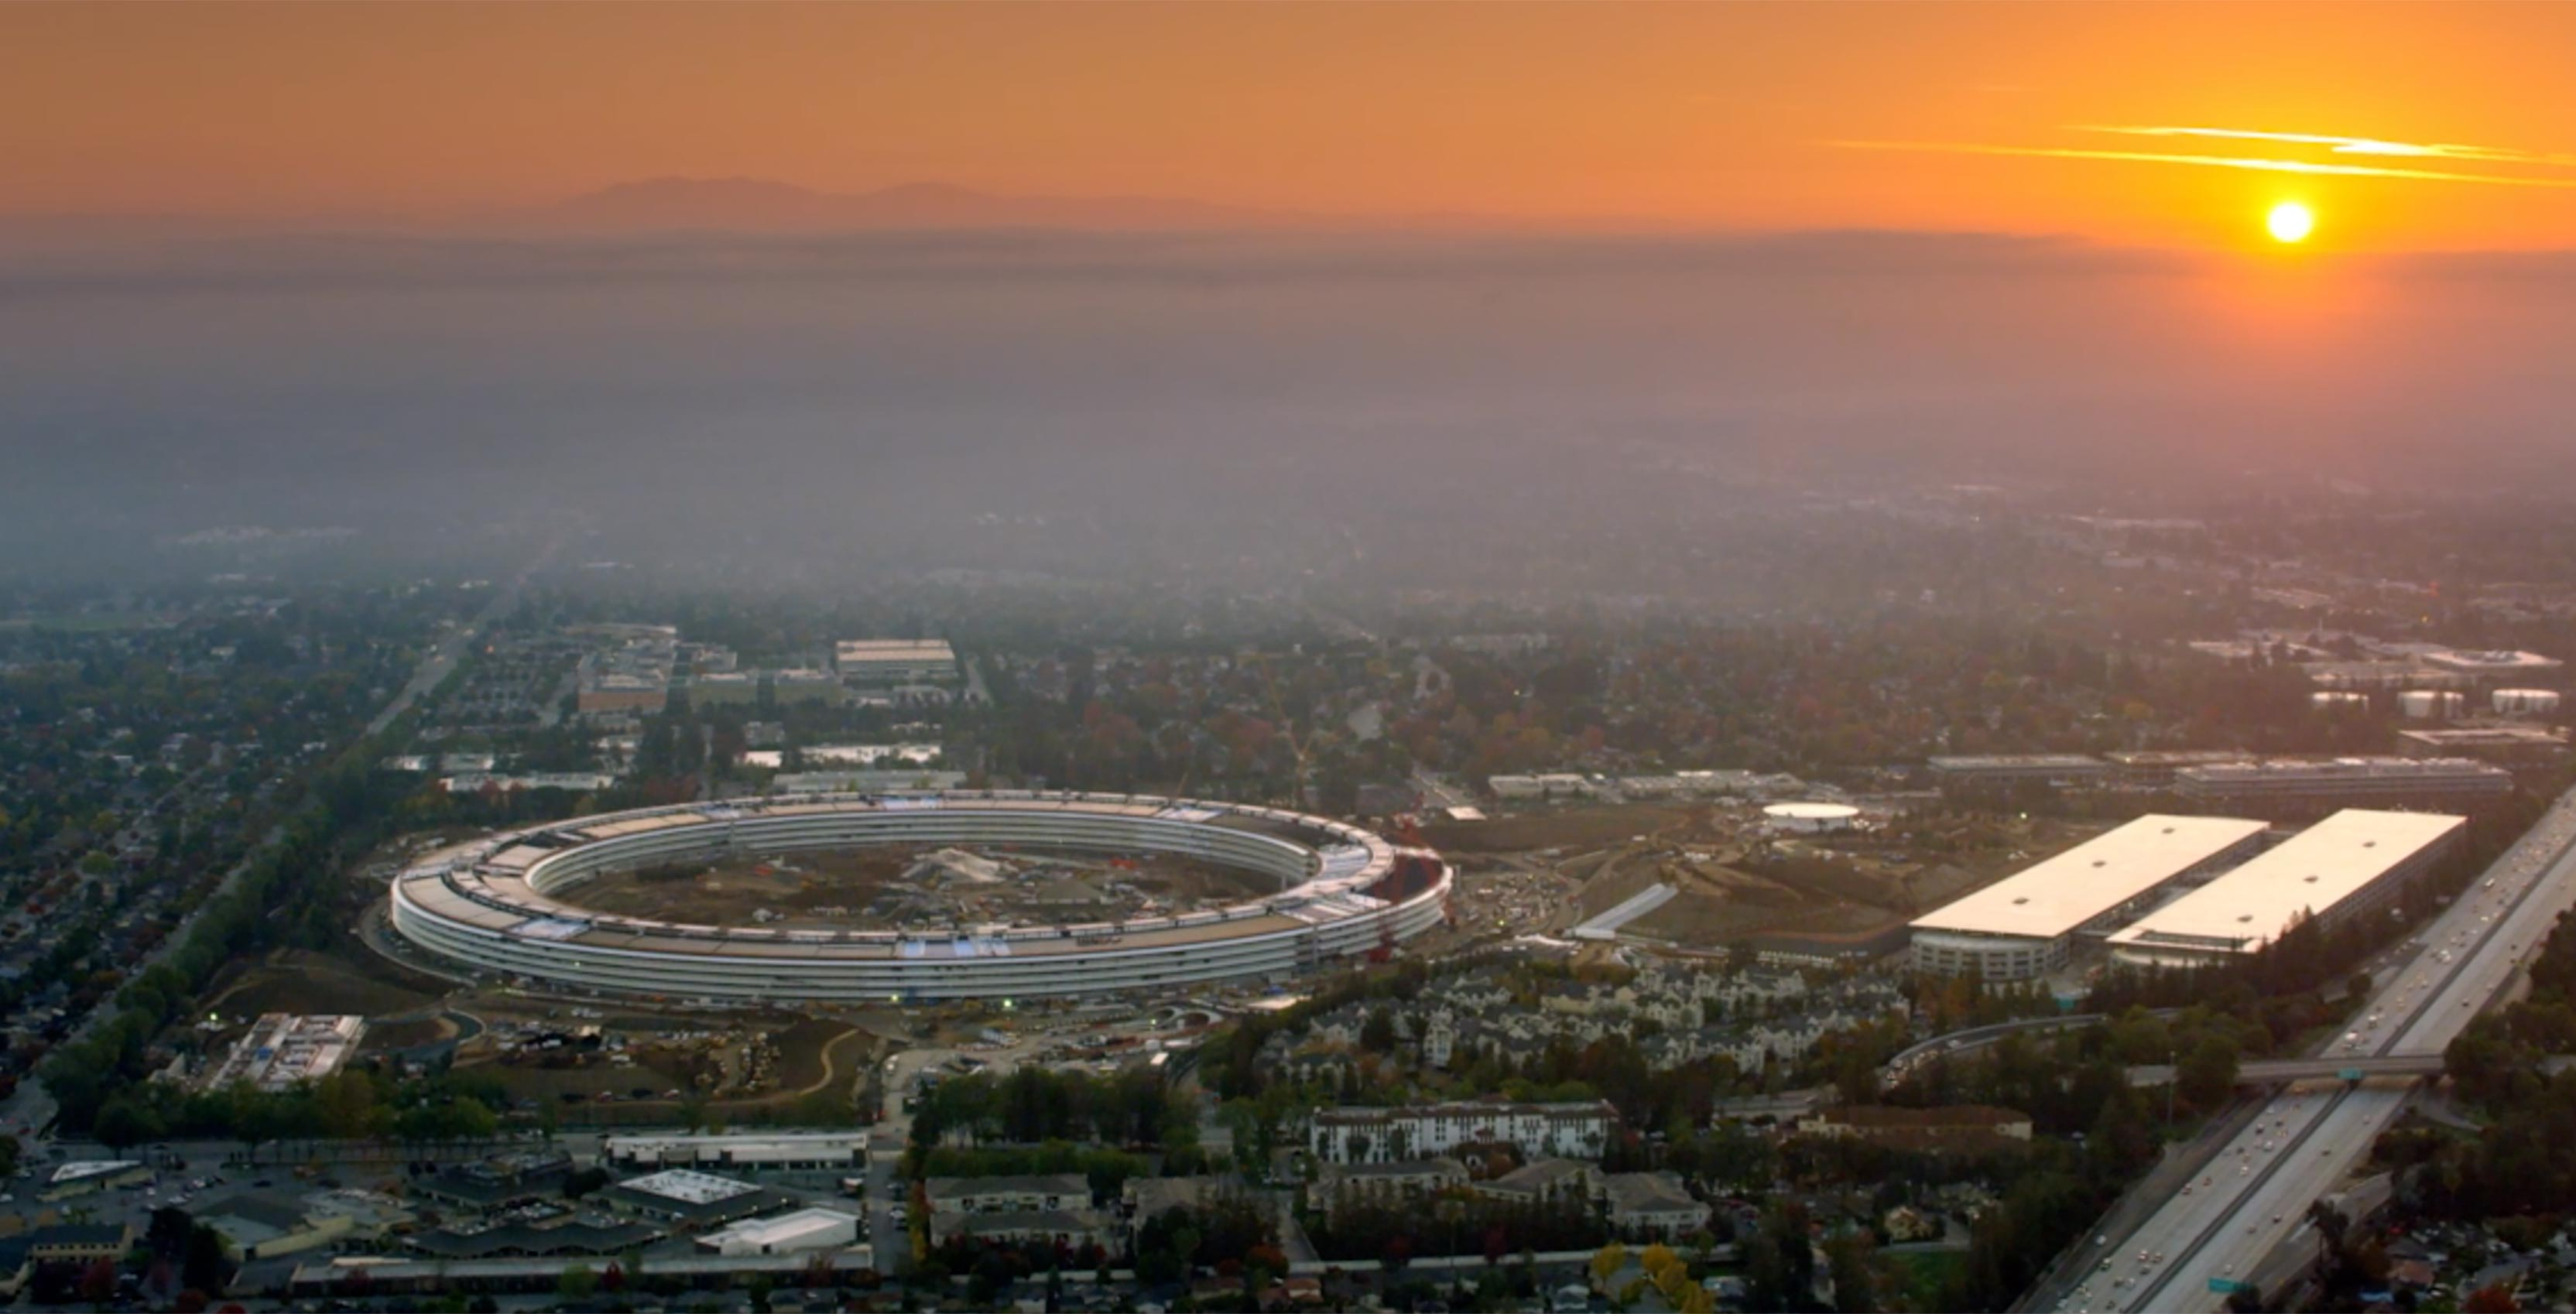 Apple Park, the tech giant's futuristic spaceship-like campus, is set to open in April